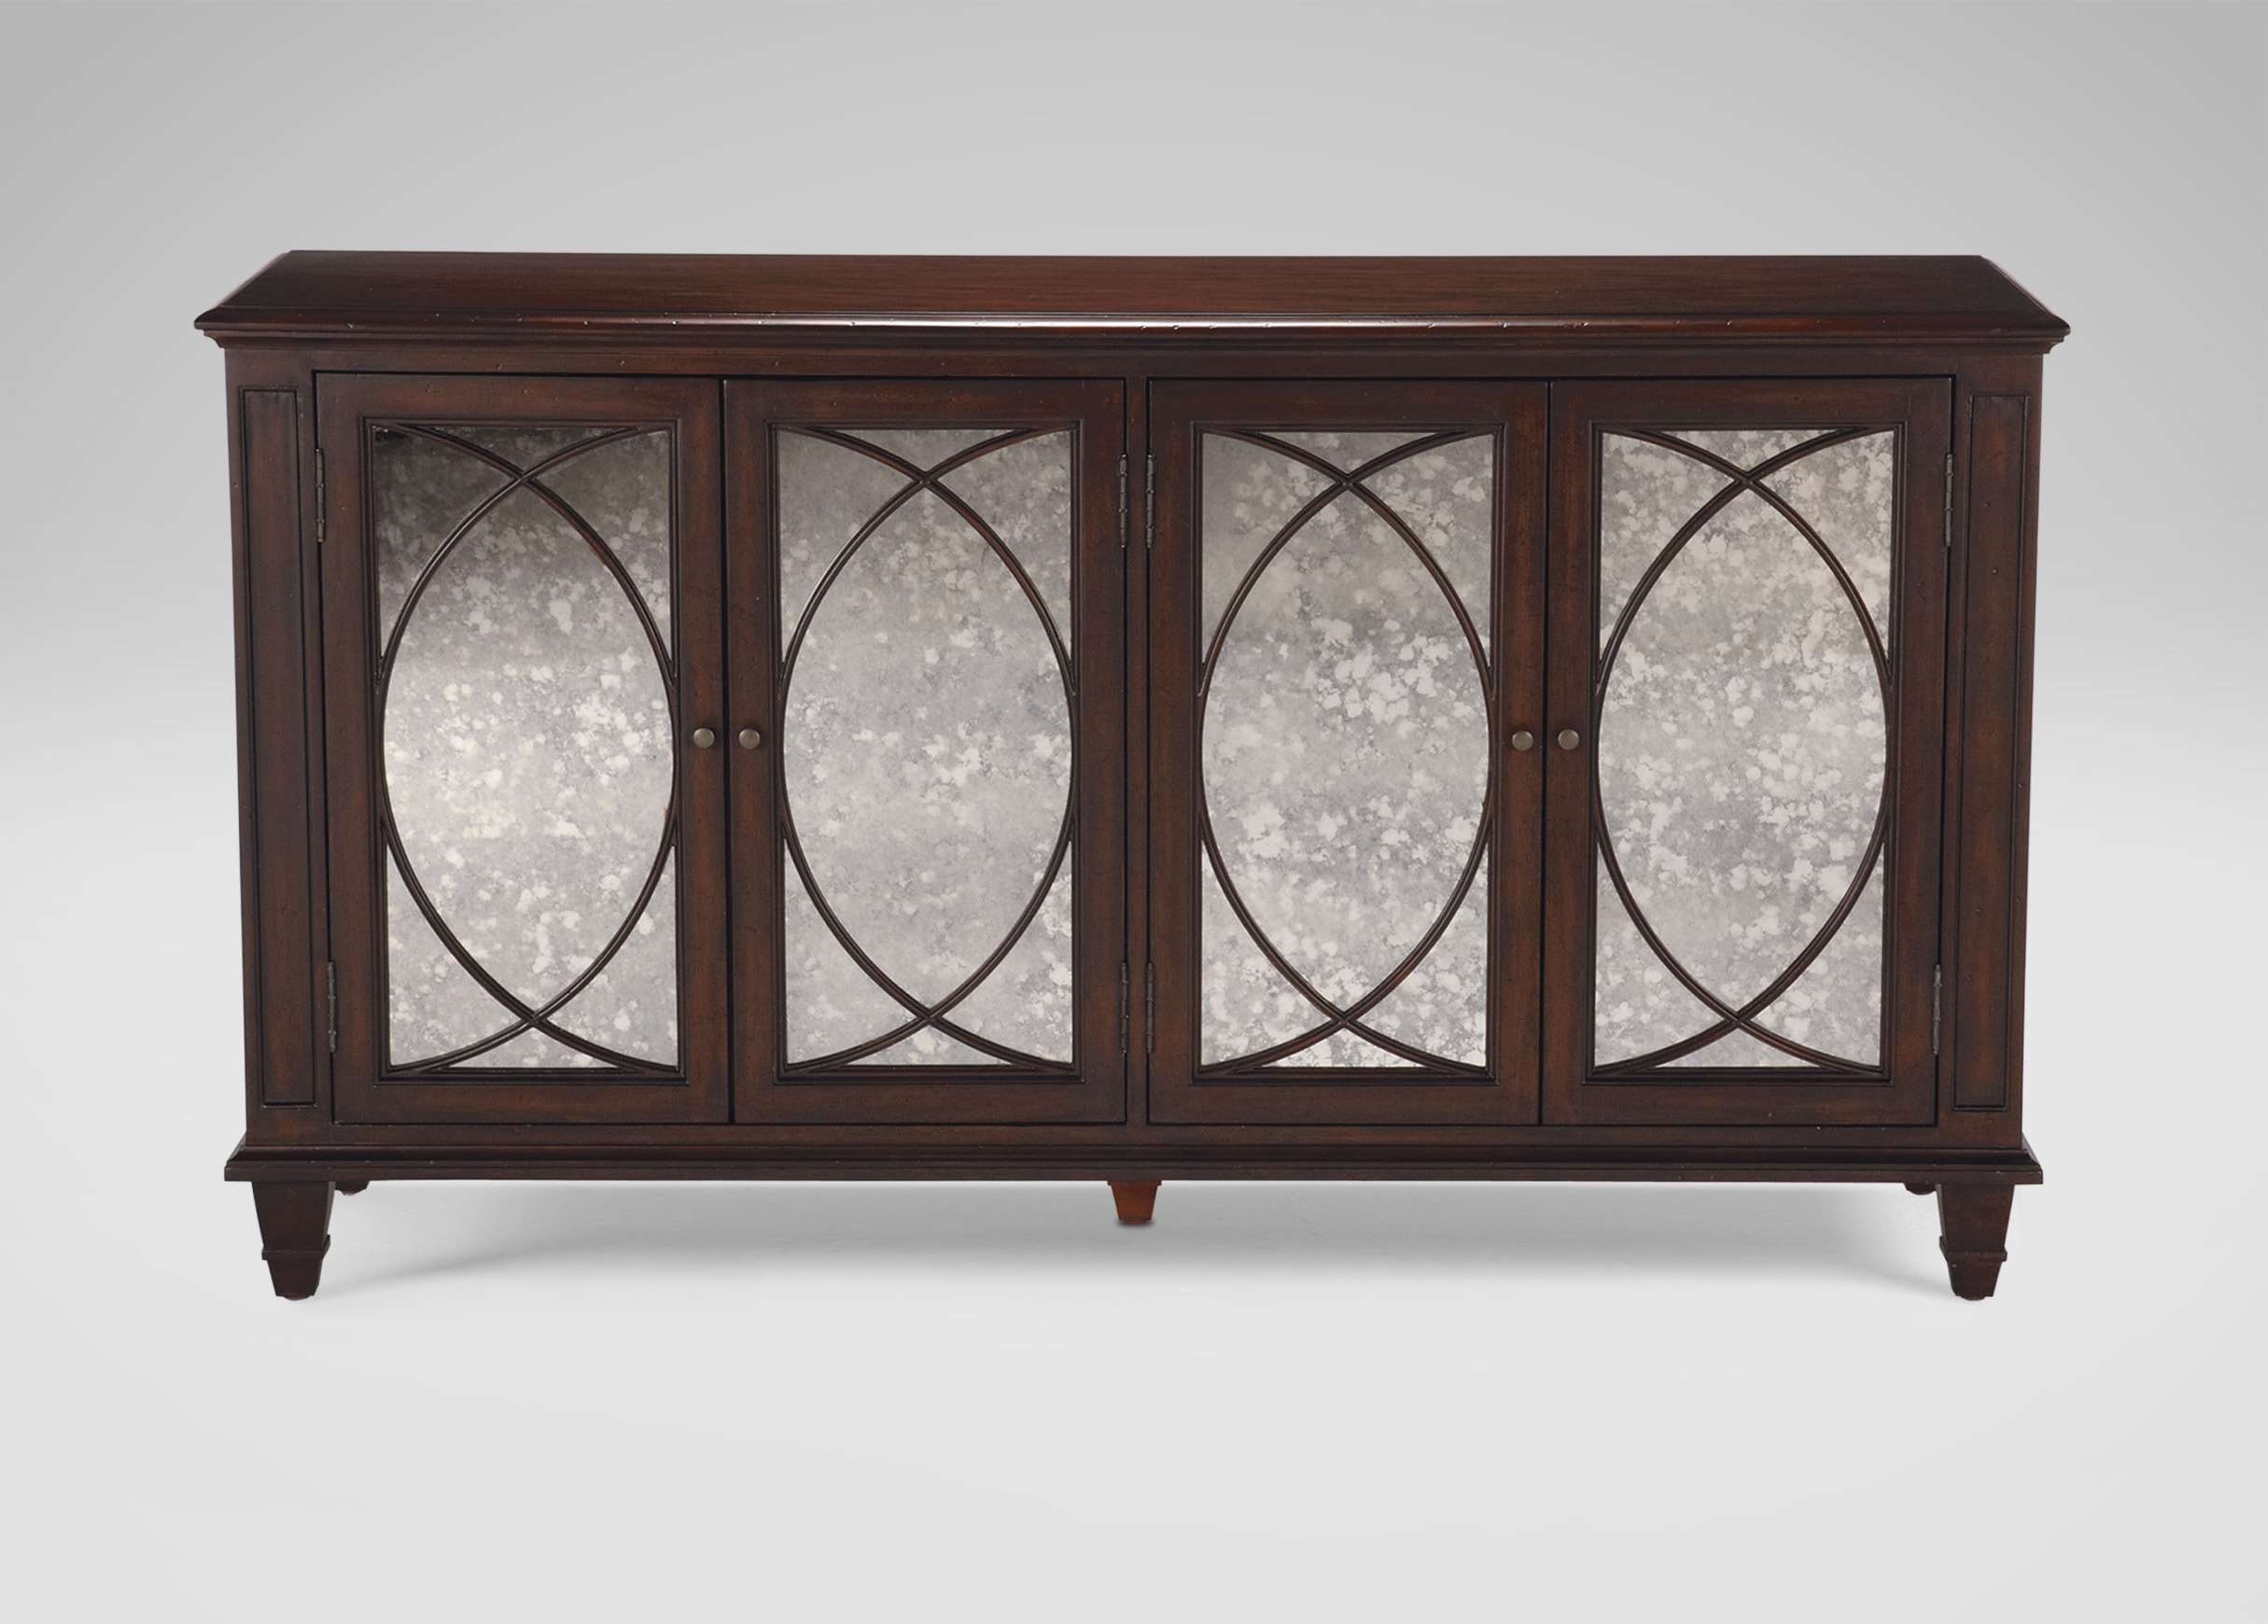 Brandt Buffet | Buffets, Sideboards & Servers With Regard To Ethan Allen Sideboards (View 2 of 20)